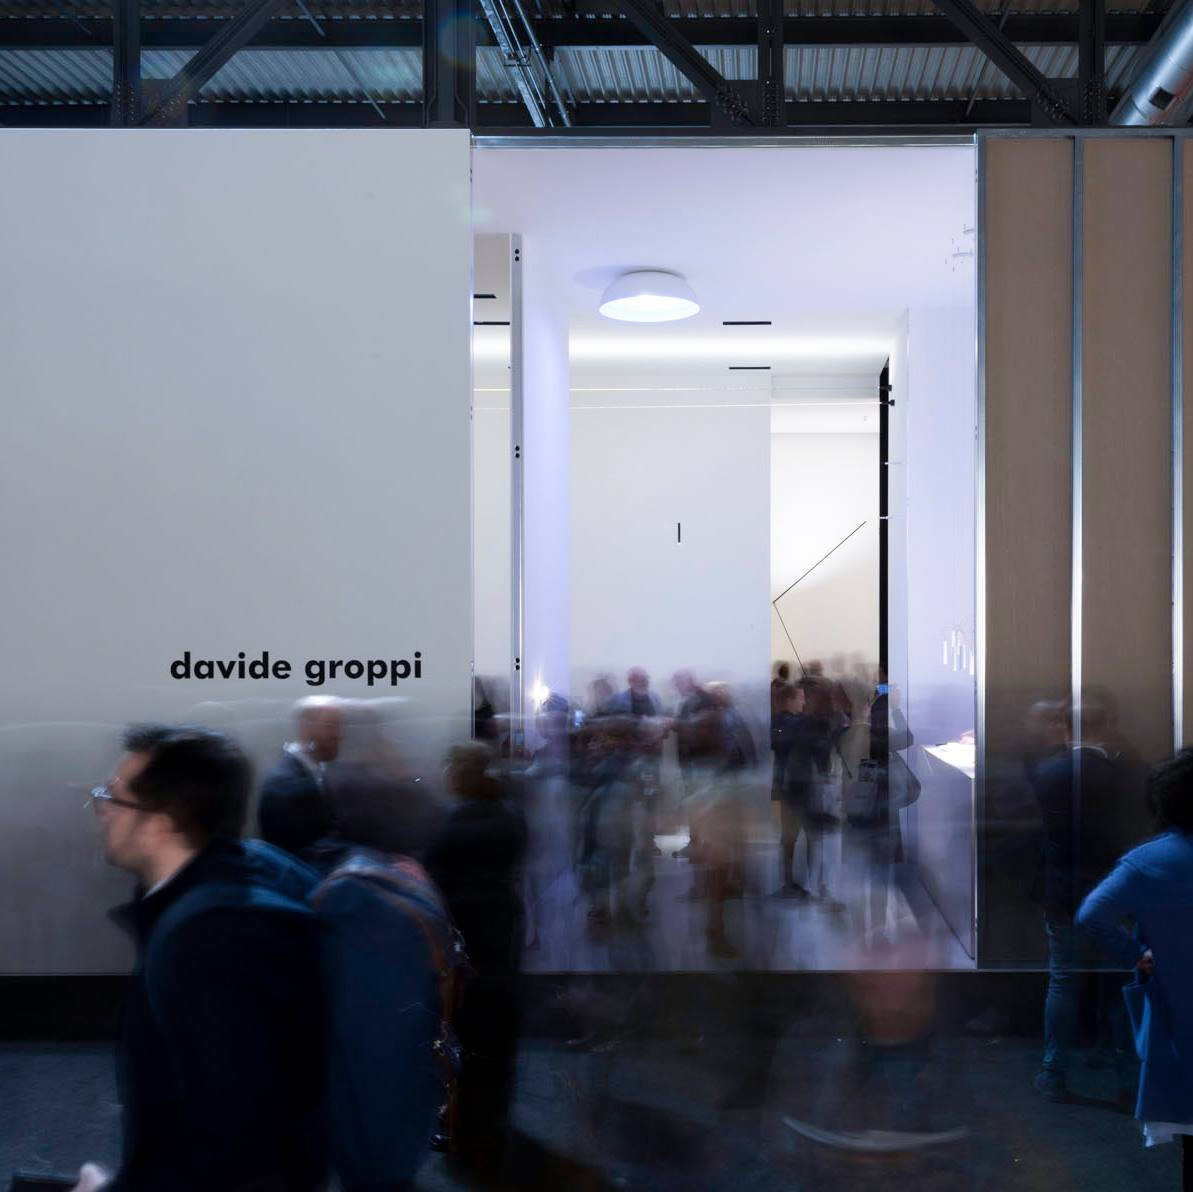 white structure with black text 'davide groppi' at euroluce 2019 with people moving and walking through the space